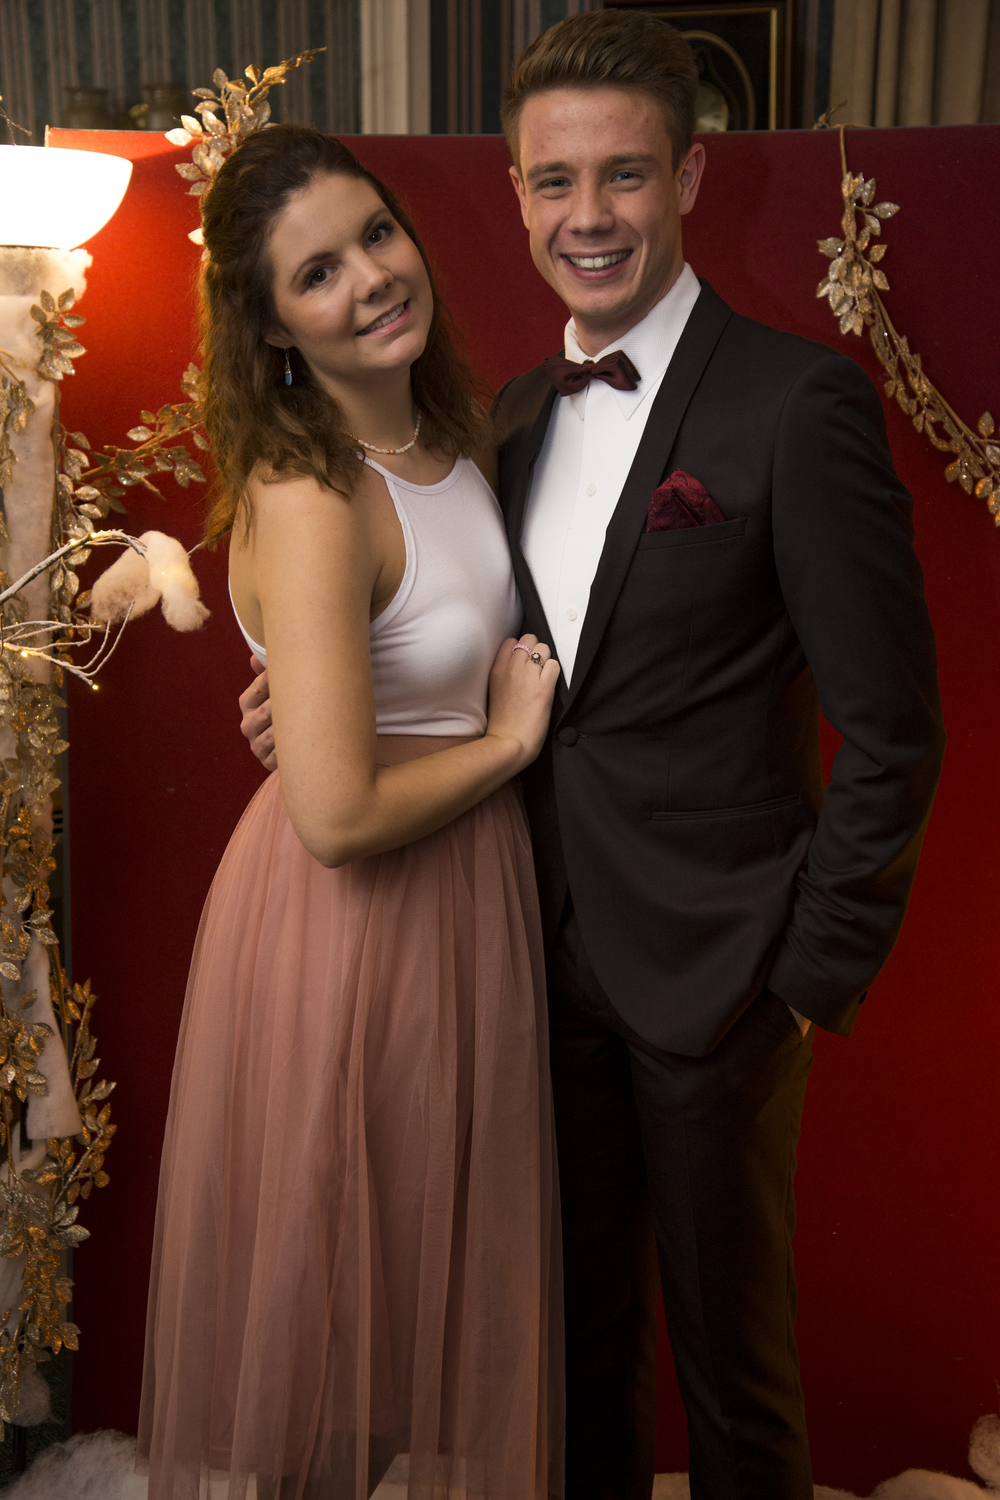 SAUS_winter_ball12121533.jpg